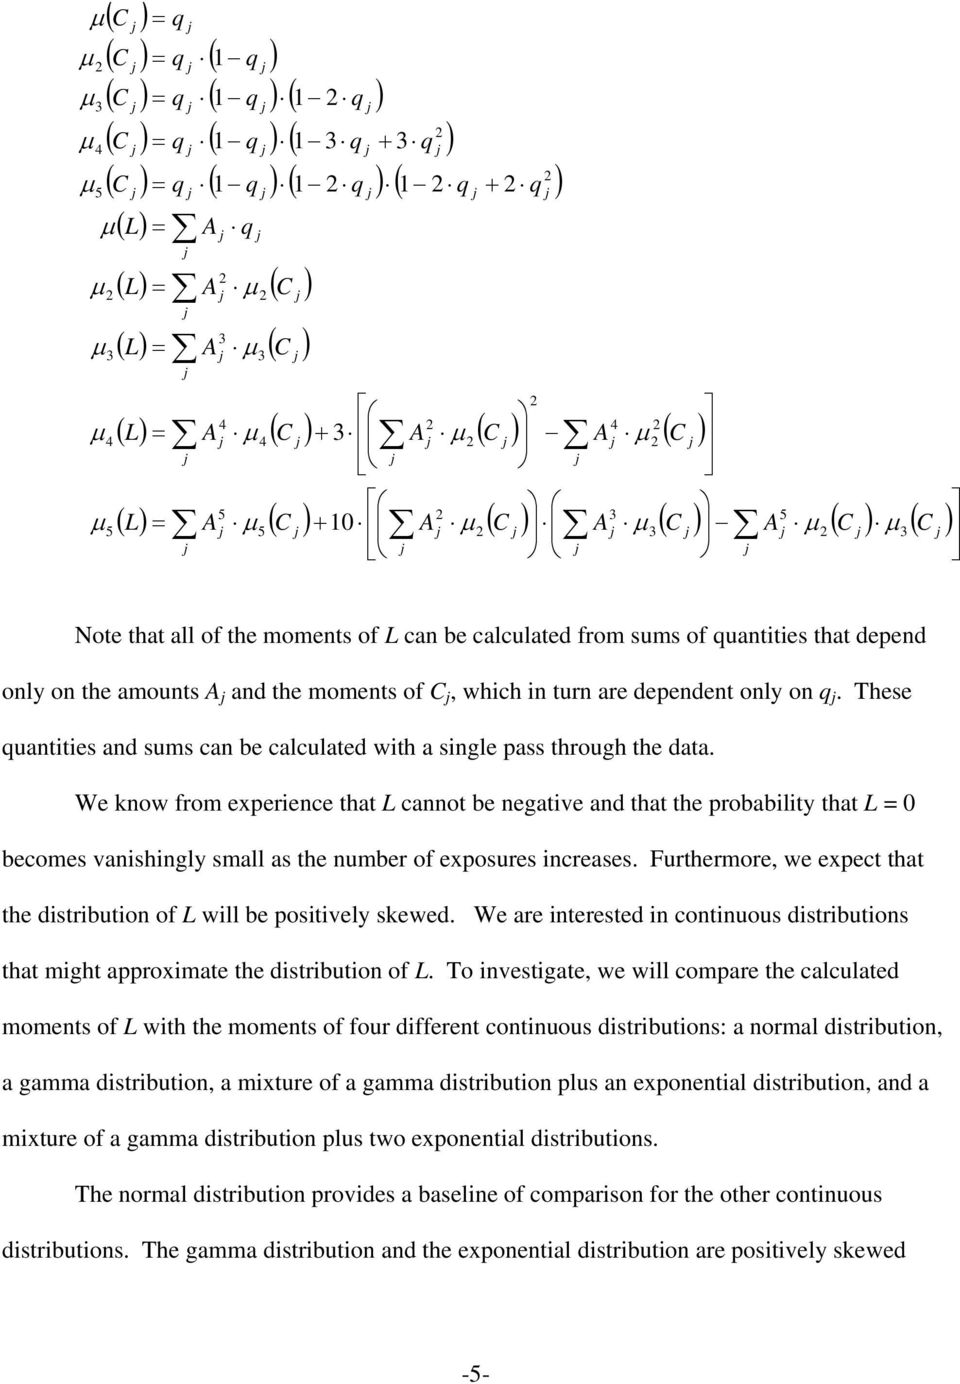 These uantities and sums can be calculated with a single pass through the data.